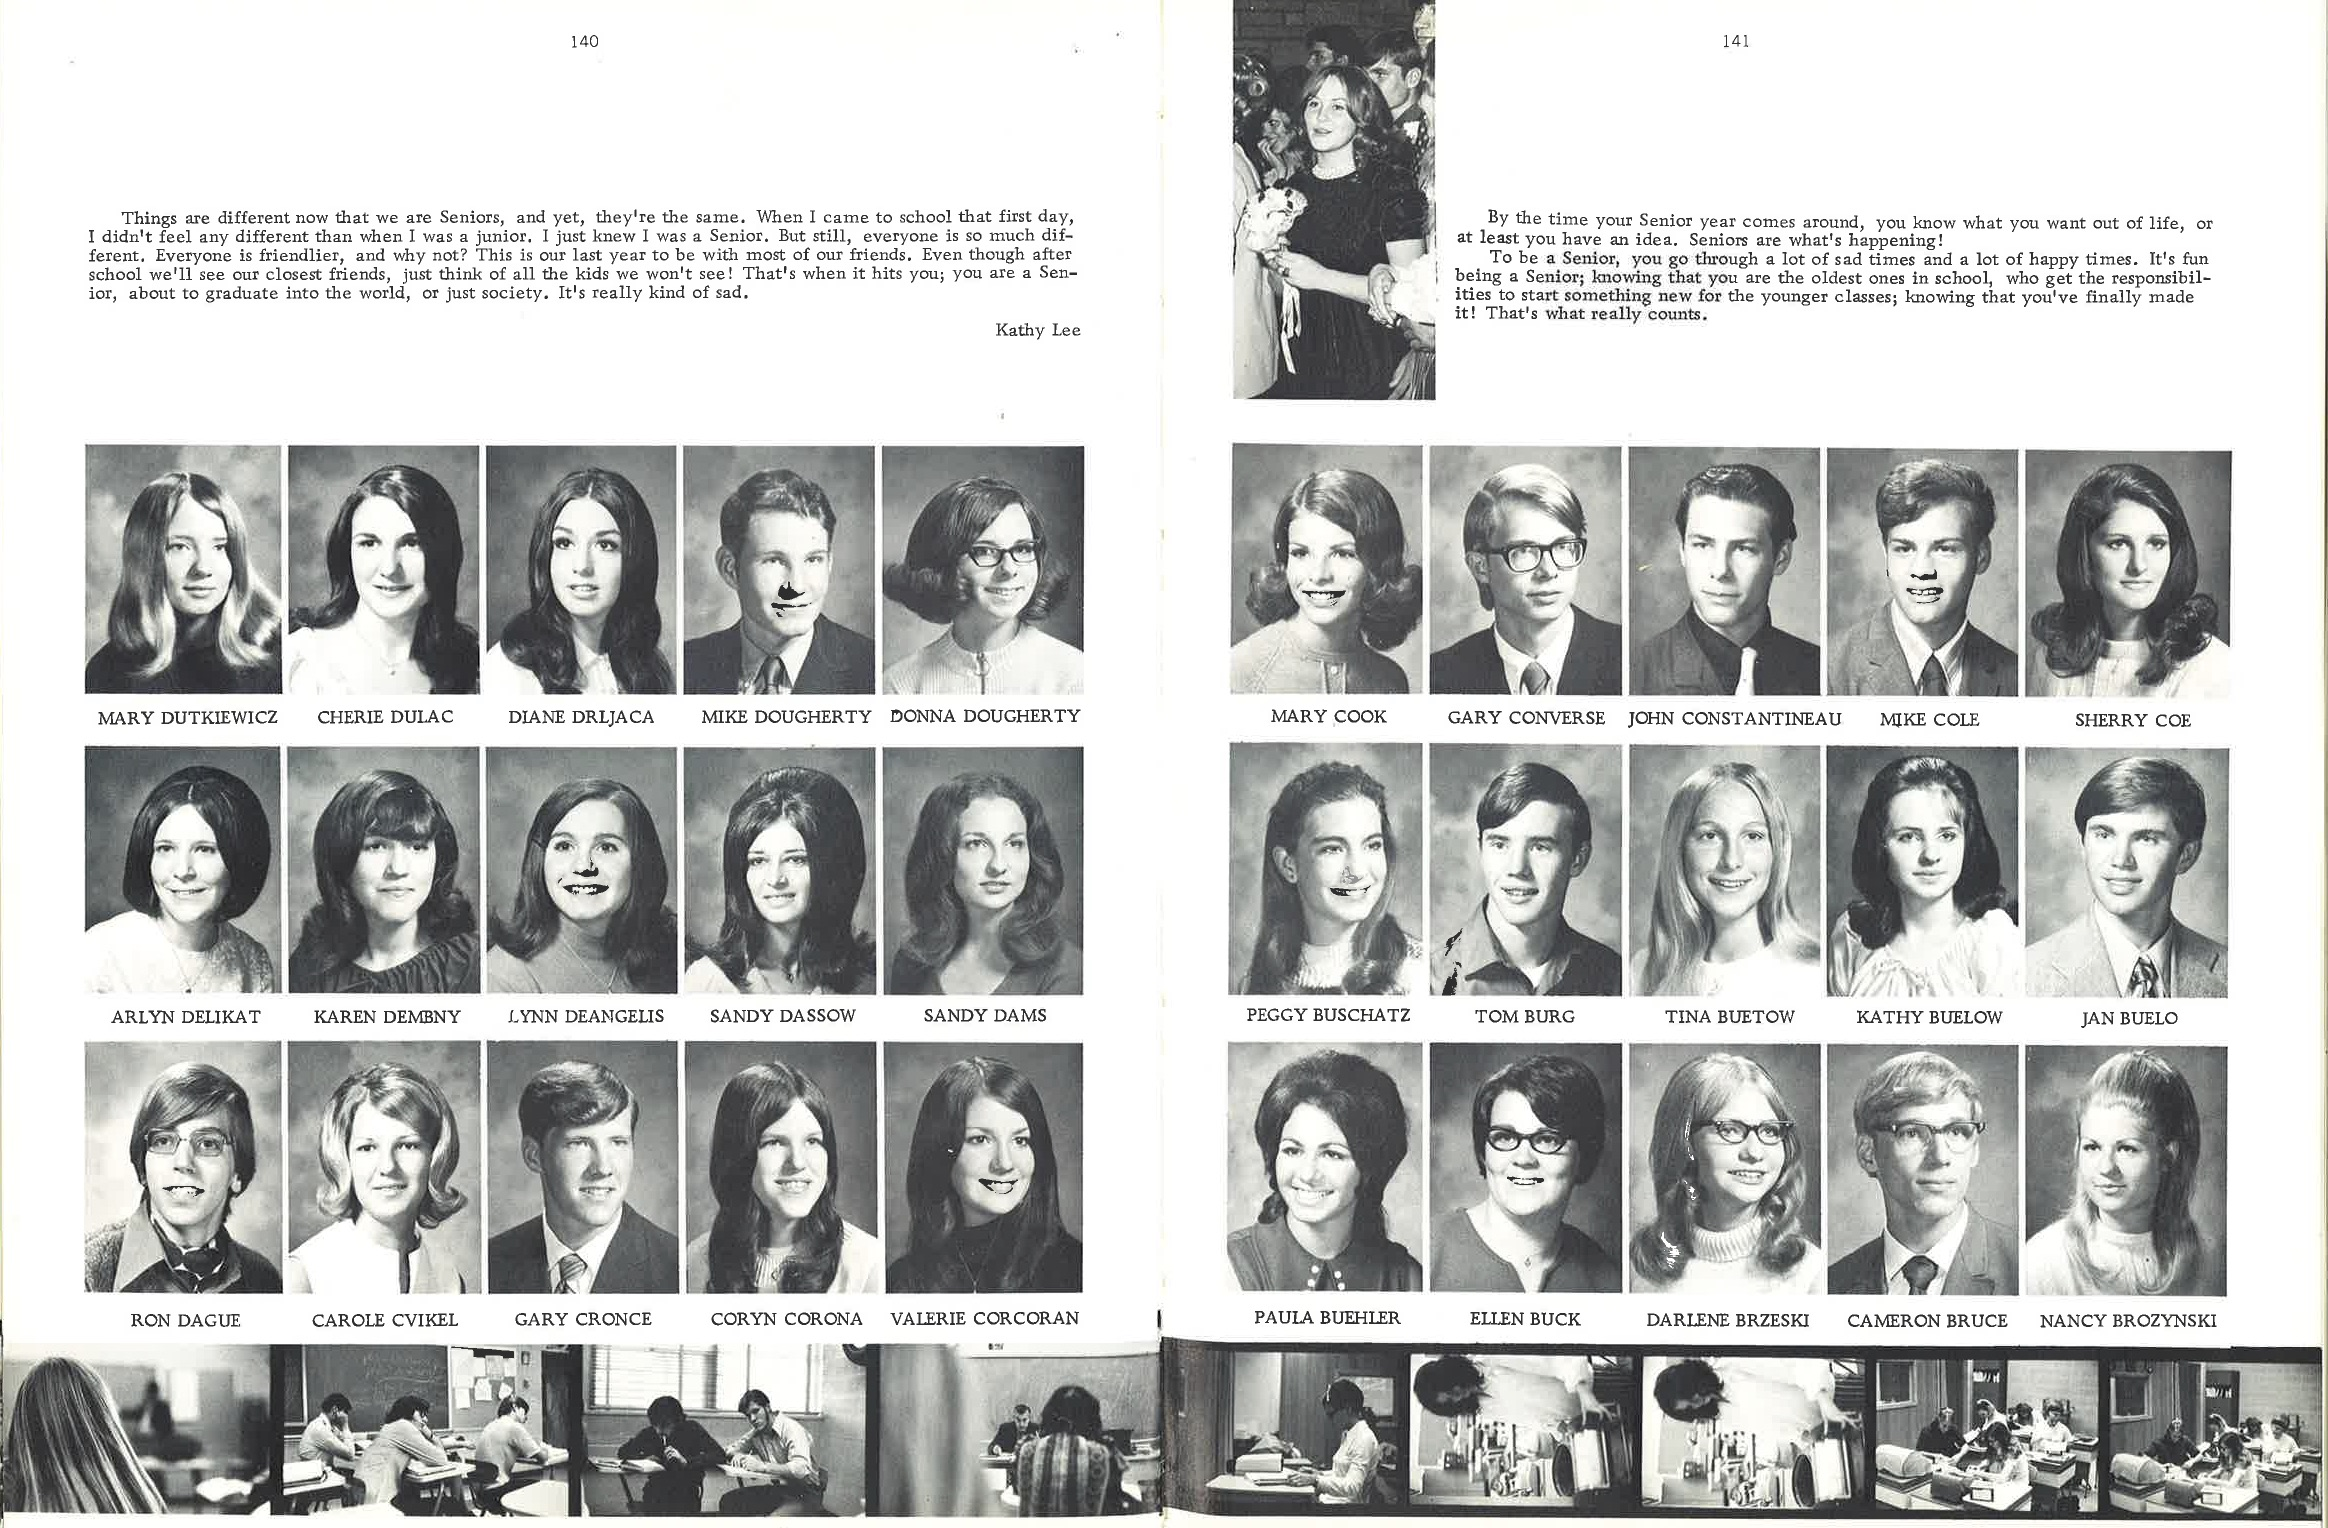 1972_Yearbook_140-141.jpg